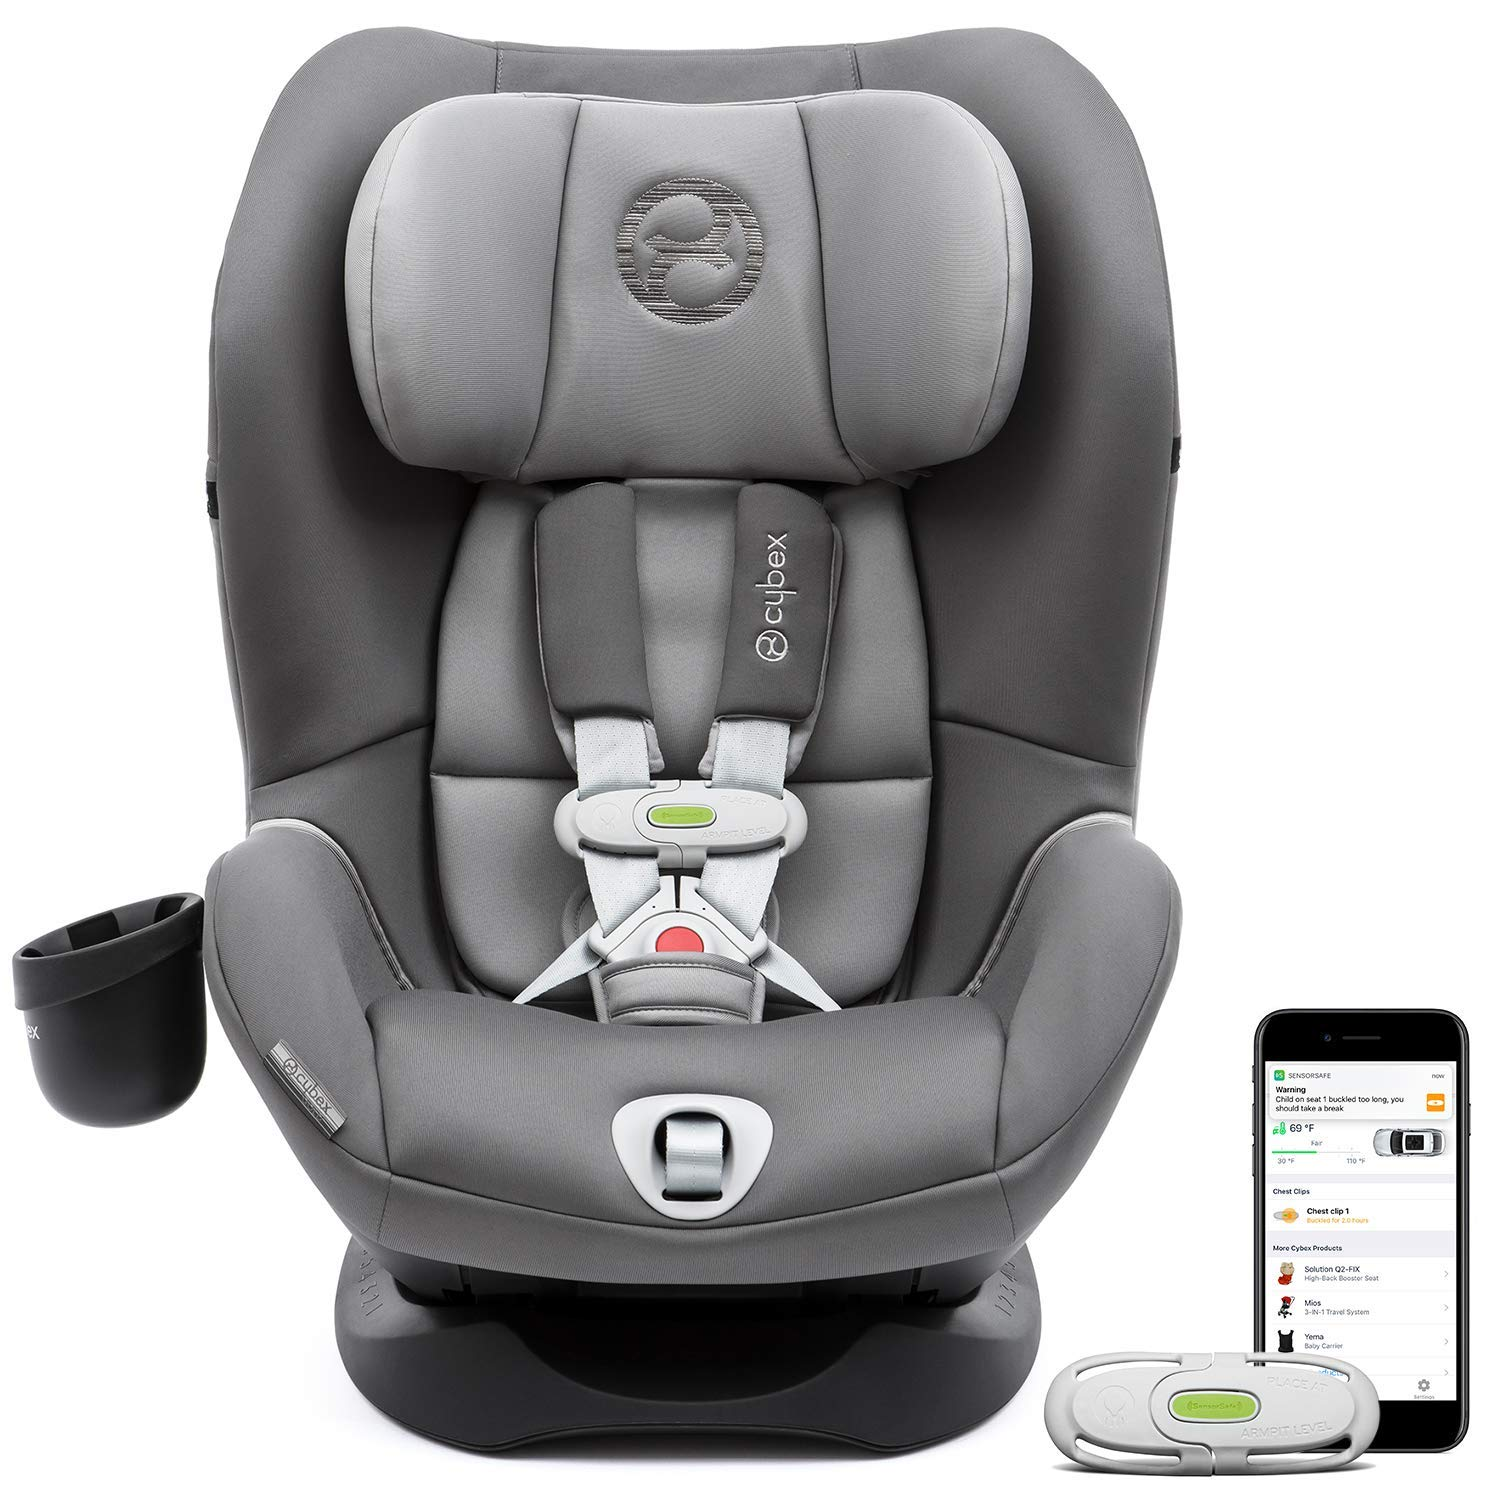 CYBEX Sirona M with SensorSafe Convertible Car Seat, 5-Point Harness Chest Clip with Built-in Sensor, LSP Linear Side-Impact Protection, Latch System, Fits Infants and Toddlers from 5-65 lbs